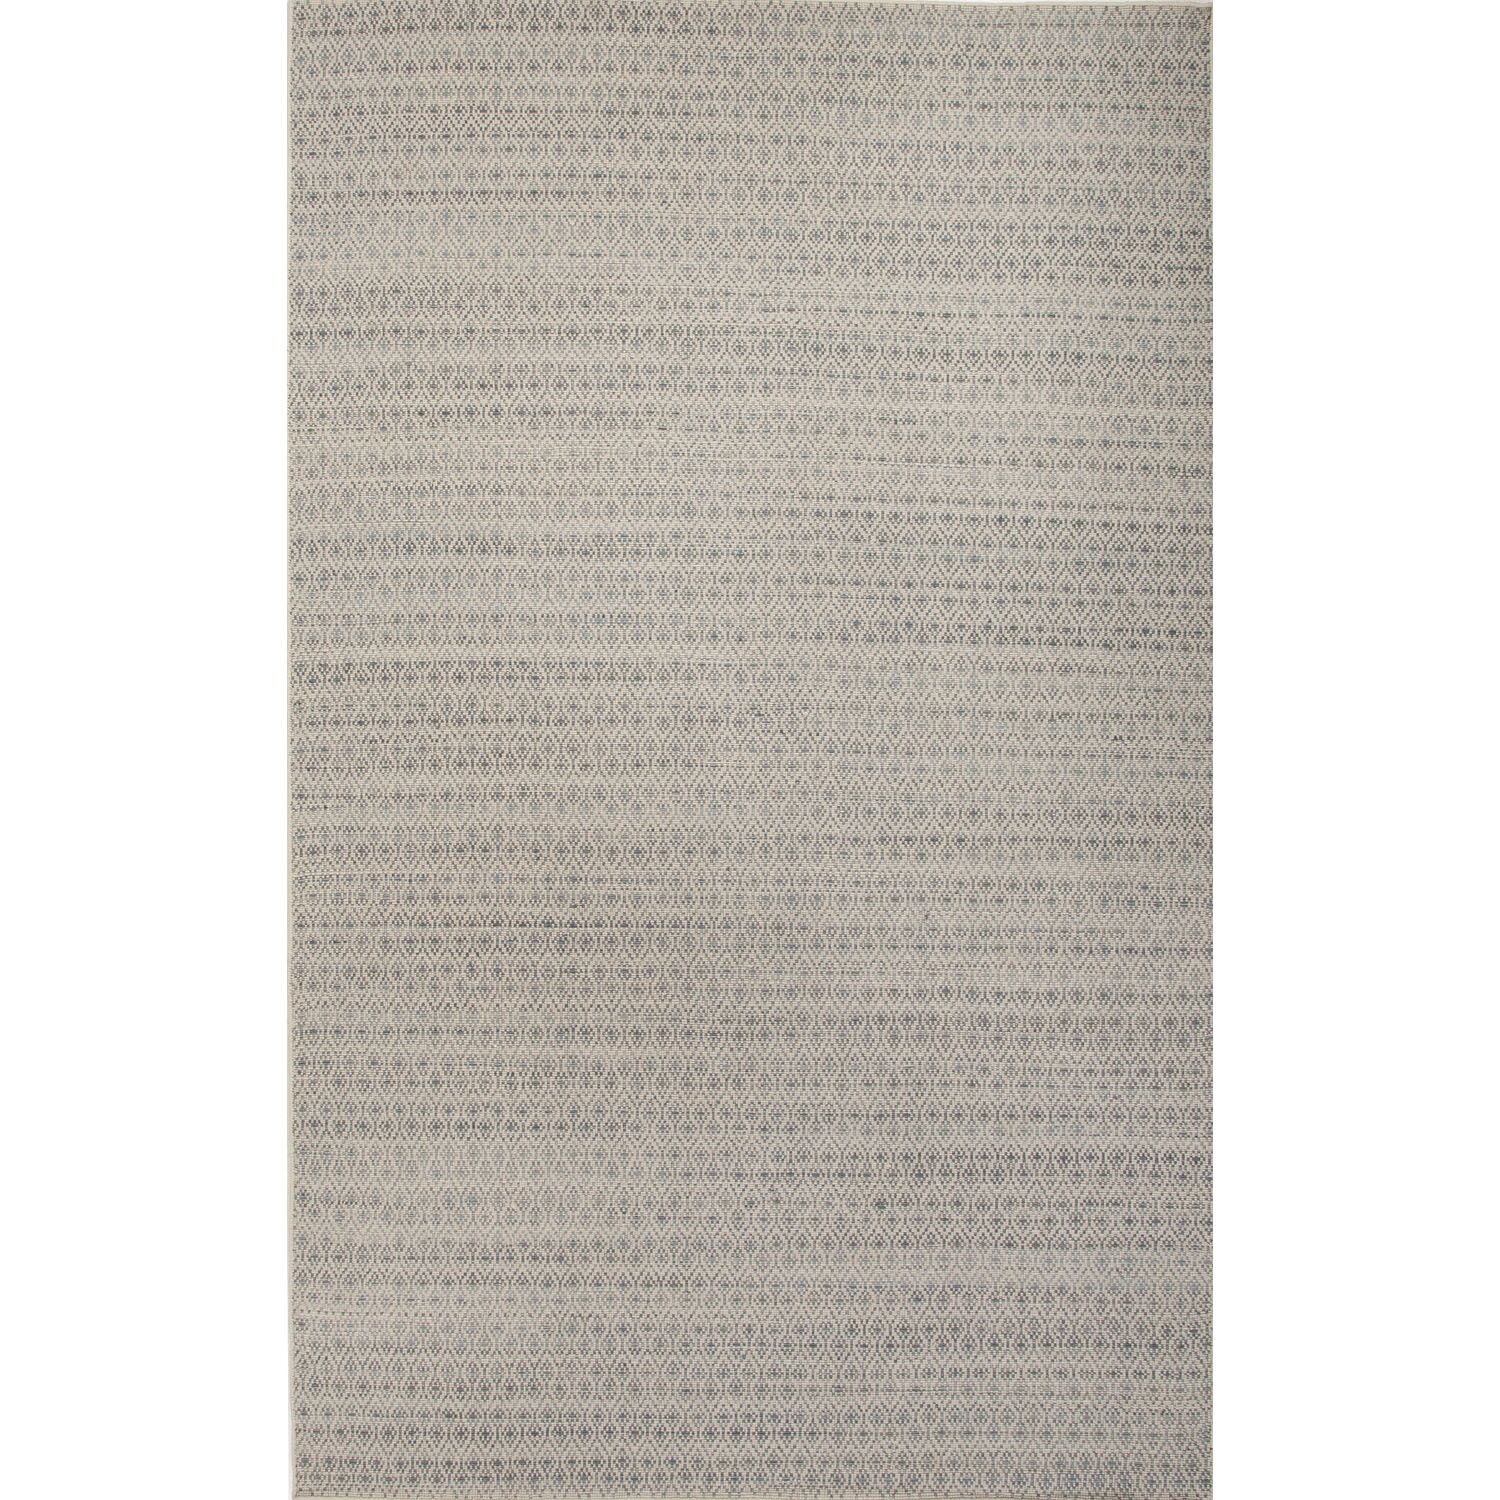 Turton Taupe/Gray Solid Area Rug Rug Size: Rectangle 9'6